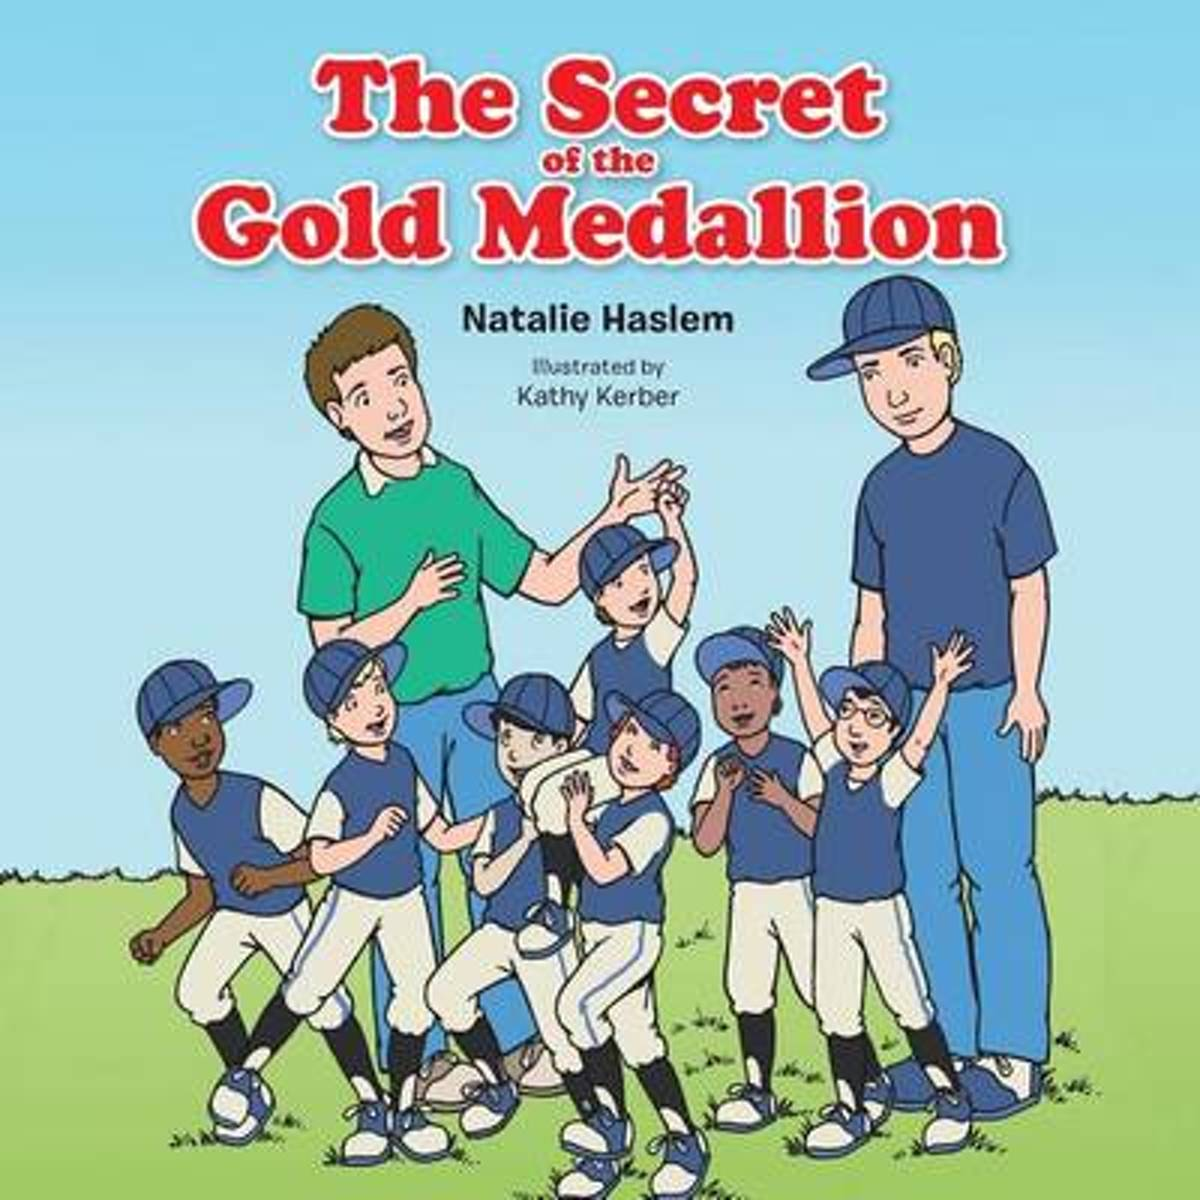 The Secret of the Gold Medallion